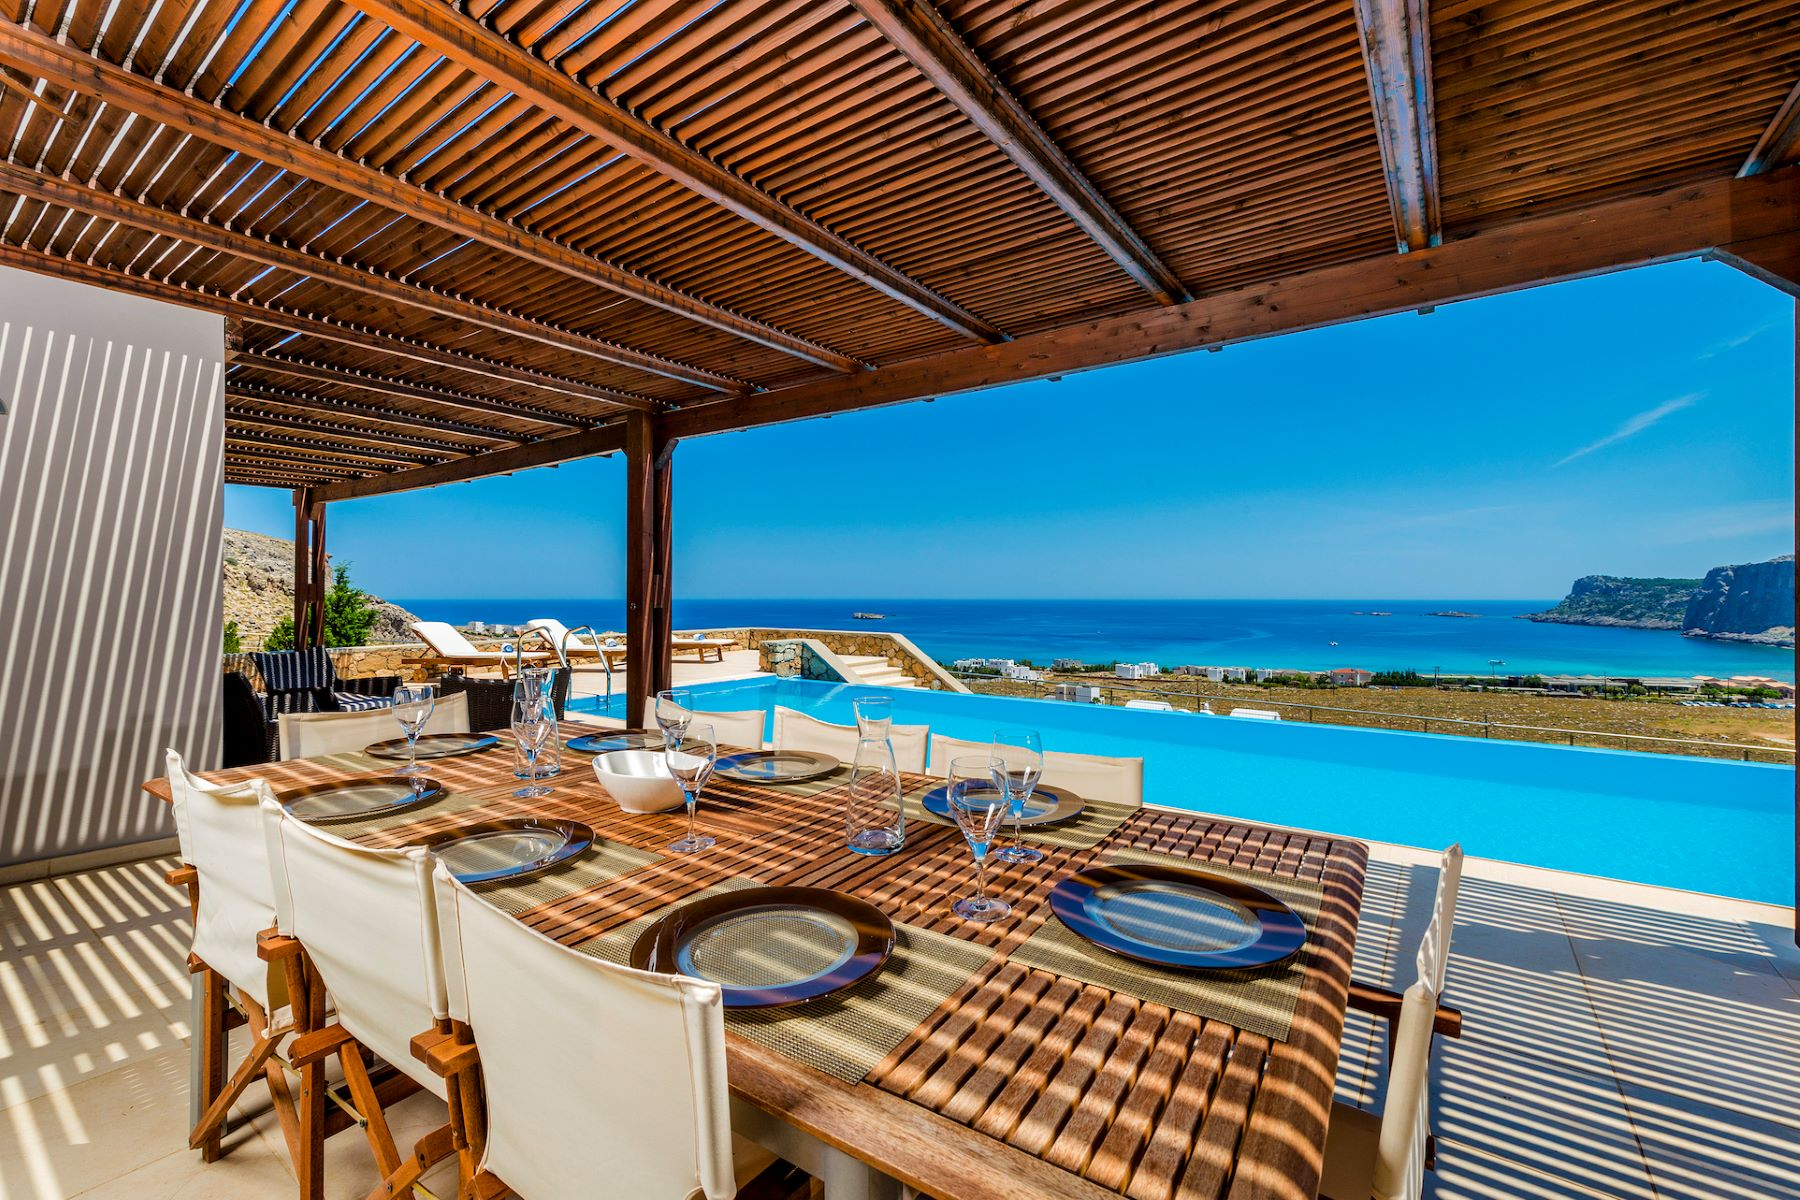 Single Family Home for Sale at Jet Set Navarone Bay Jet-Set, Rhodes, Southern Aegean, 85133 Greece